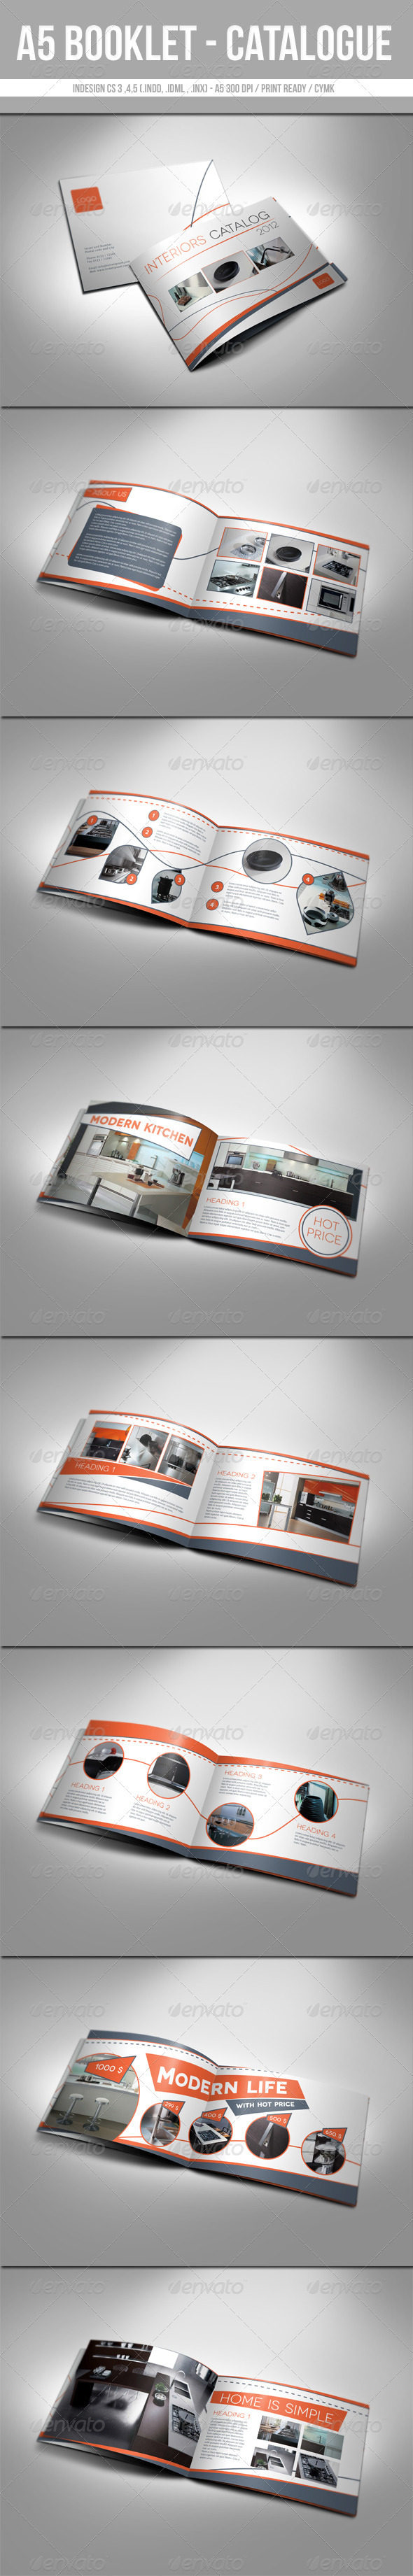 A5 Booklet - Catalogue  - Catalogs Brochures